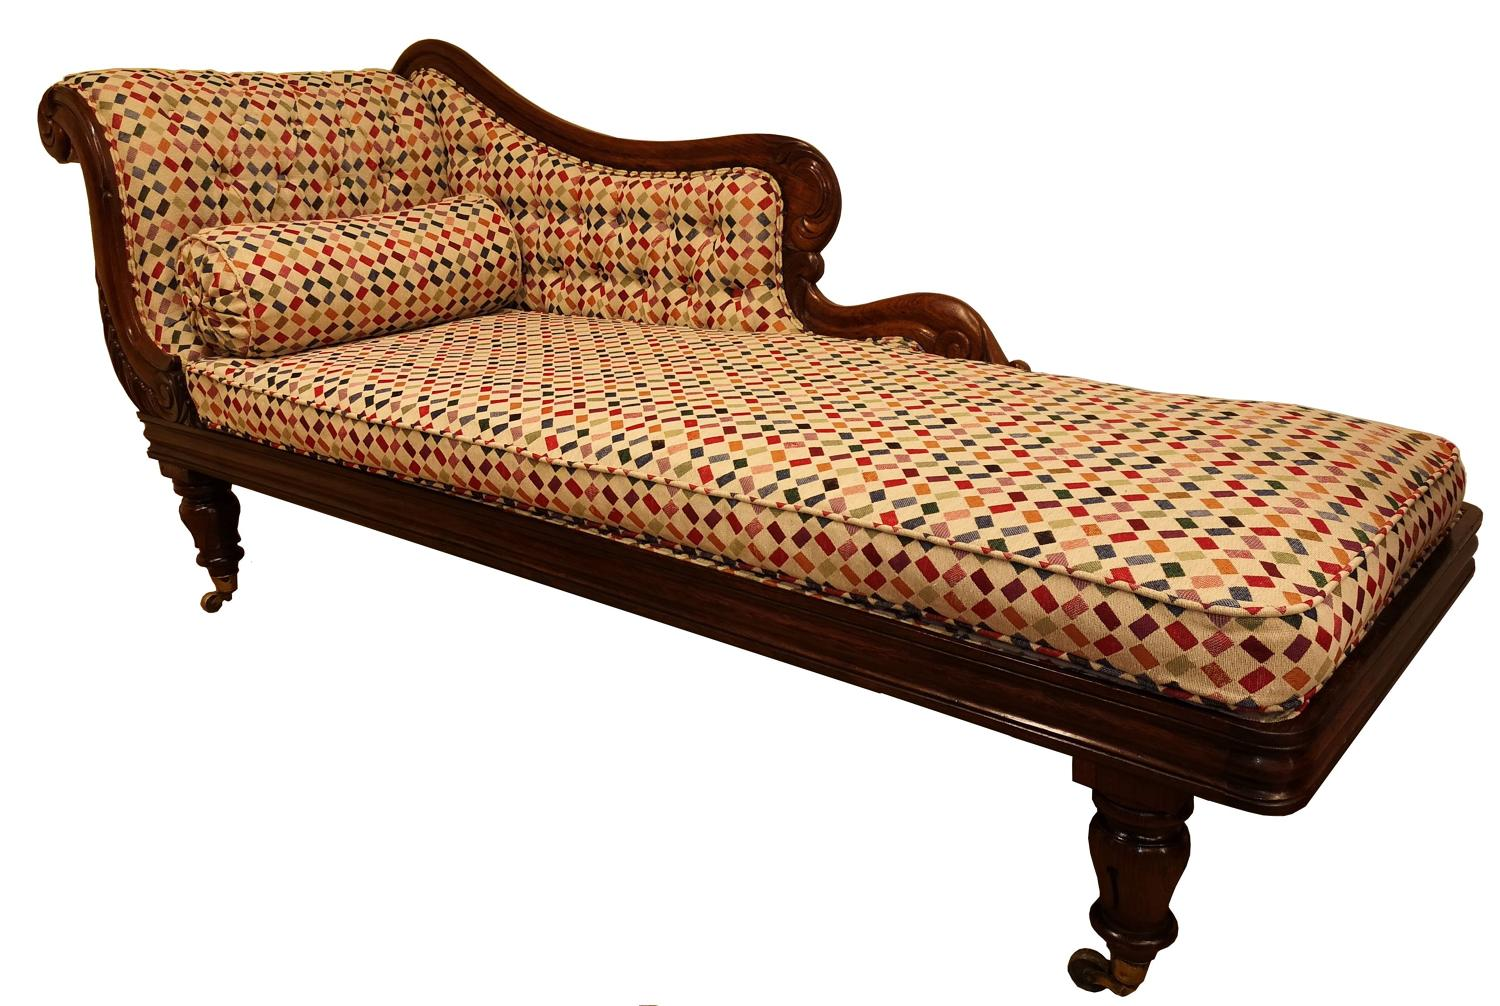 !9th century rosewood chaise longue